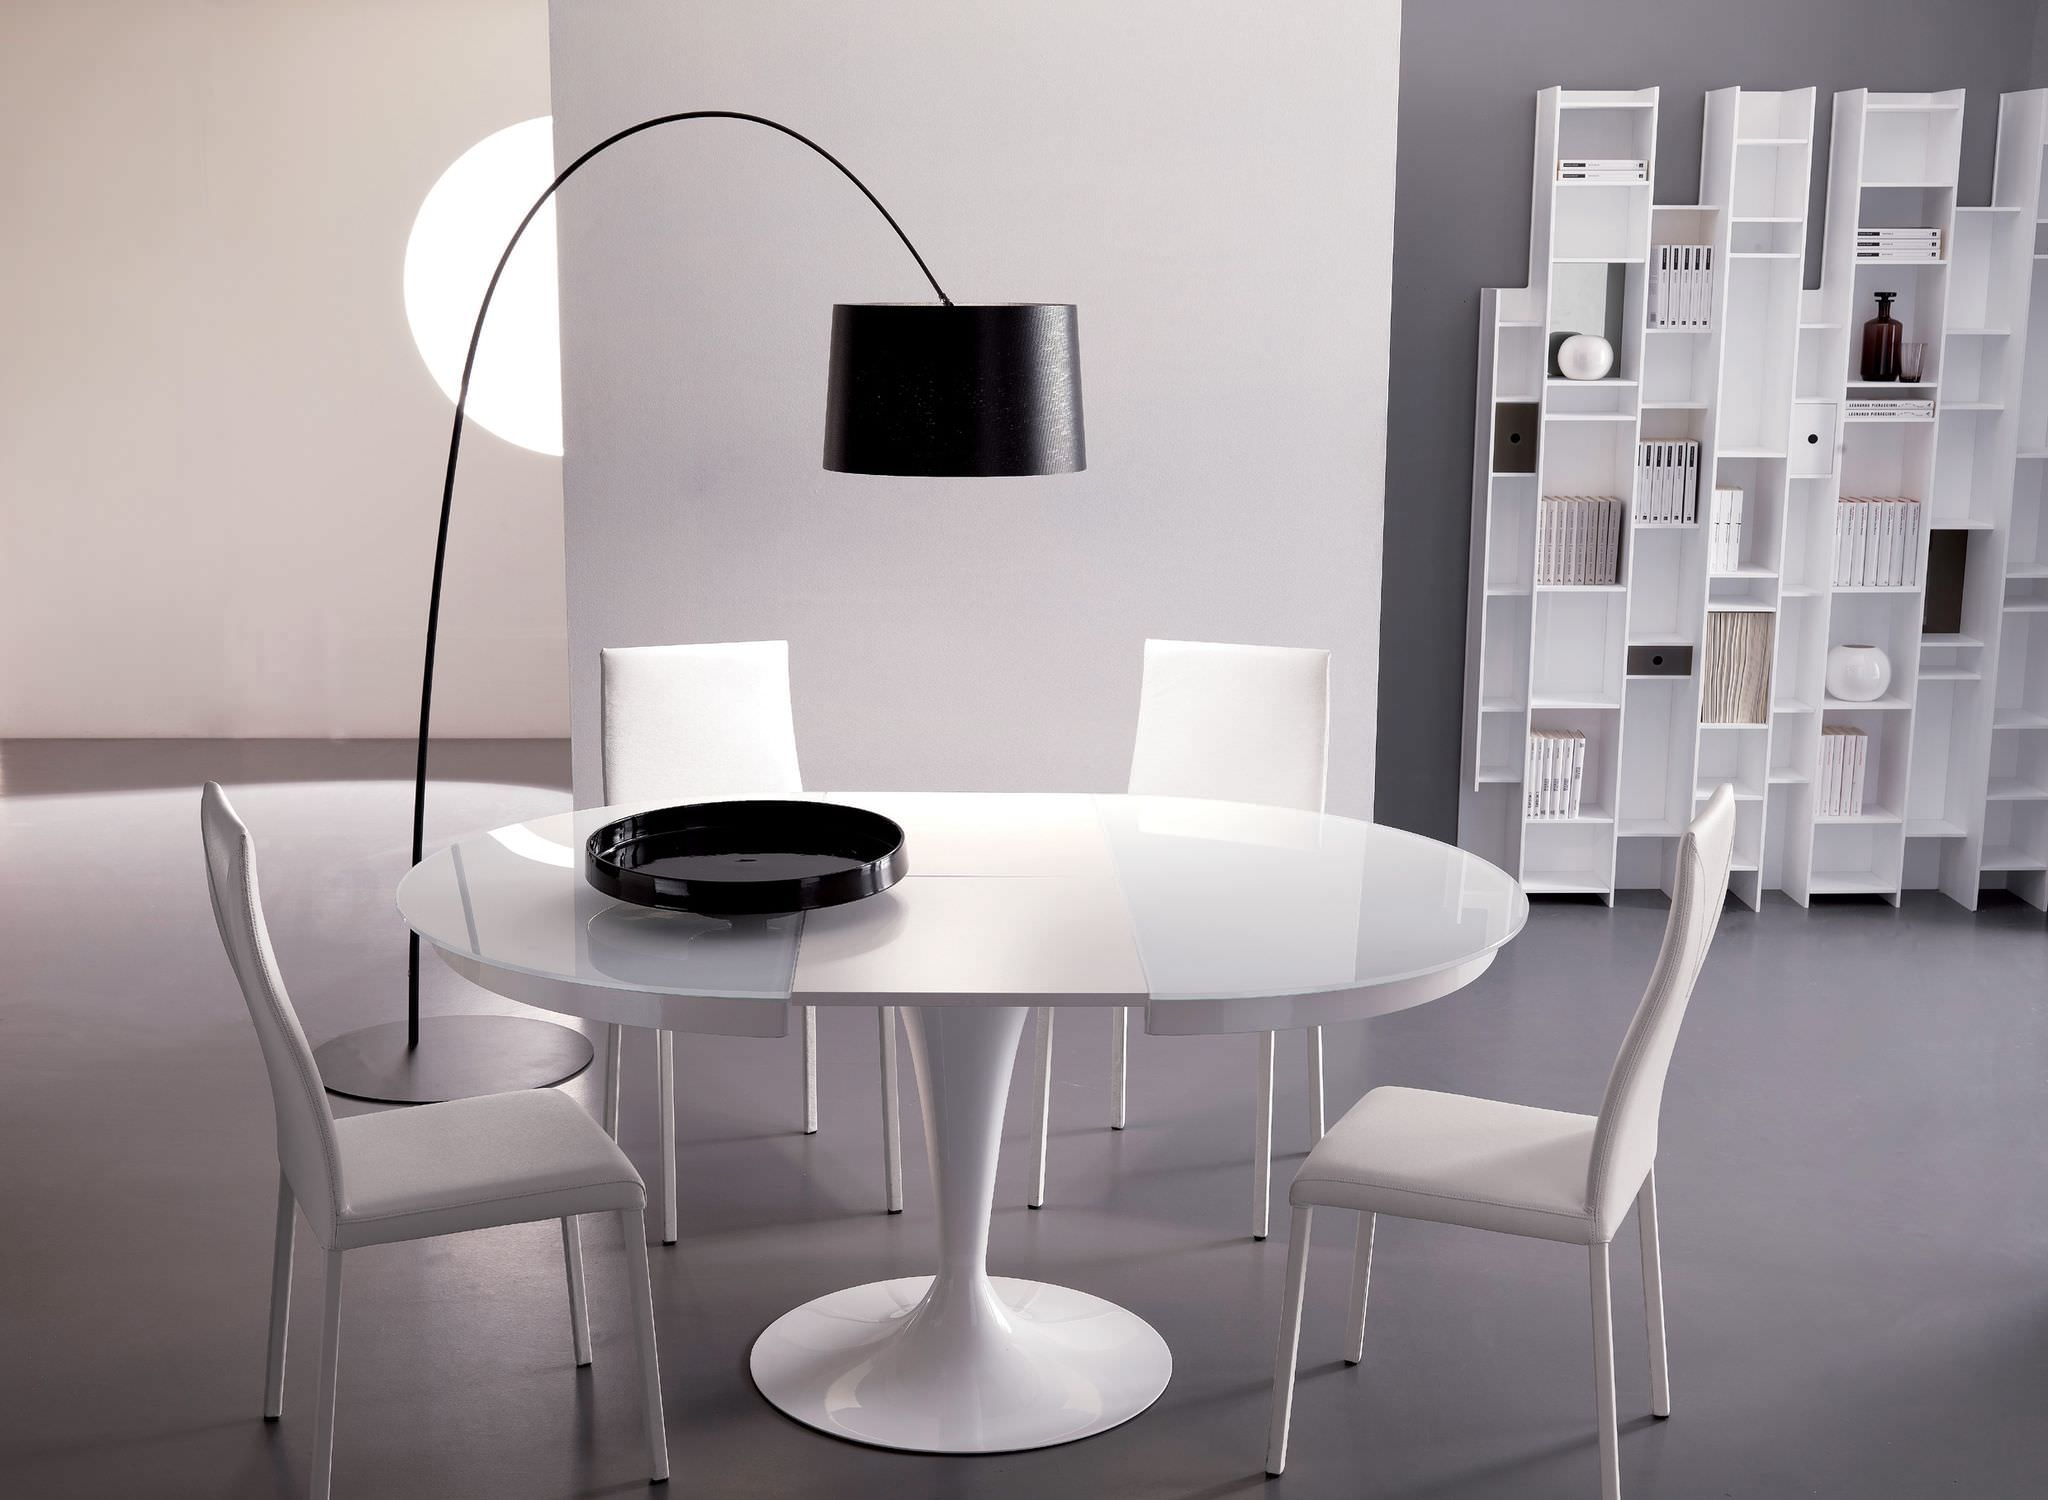 house-furniture-dining-room-fashionable-white-pedestal-round-dining-table-with-simple-white-dining-chair-also-sweet-black-shade-floor-lamp-also-open-target